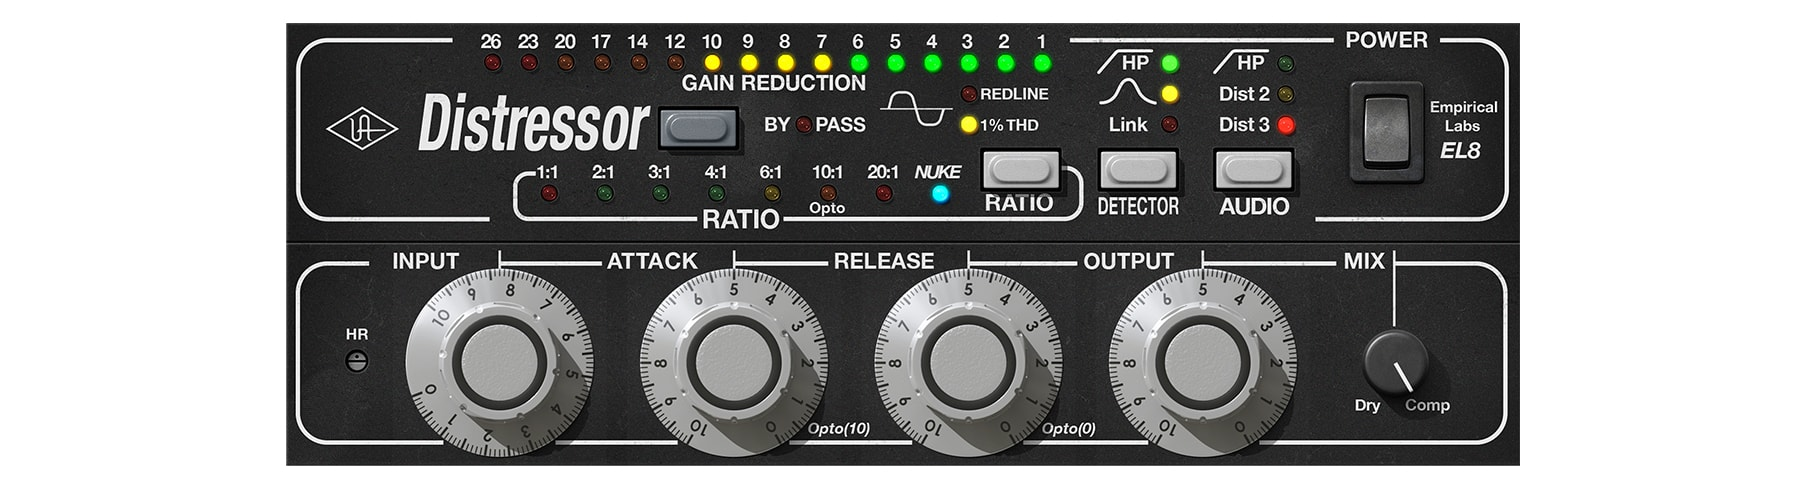 Empirical labs el8 distressor compressor uad audio plugins introduced in 1993 the empirical labs el8 distressor is revered in studios all over the world as the modern must have compressor stopboris Image collections